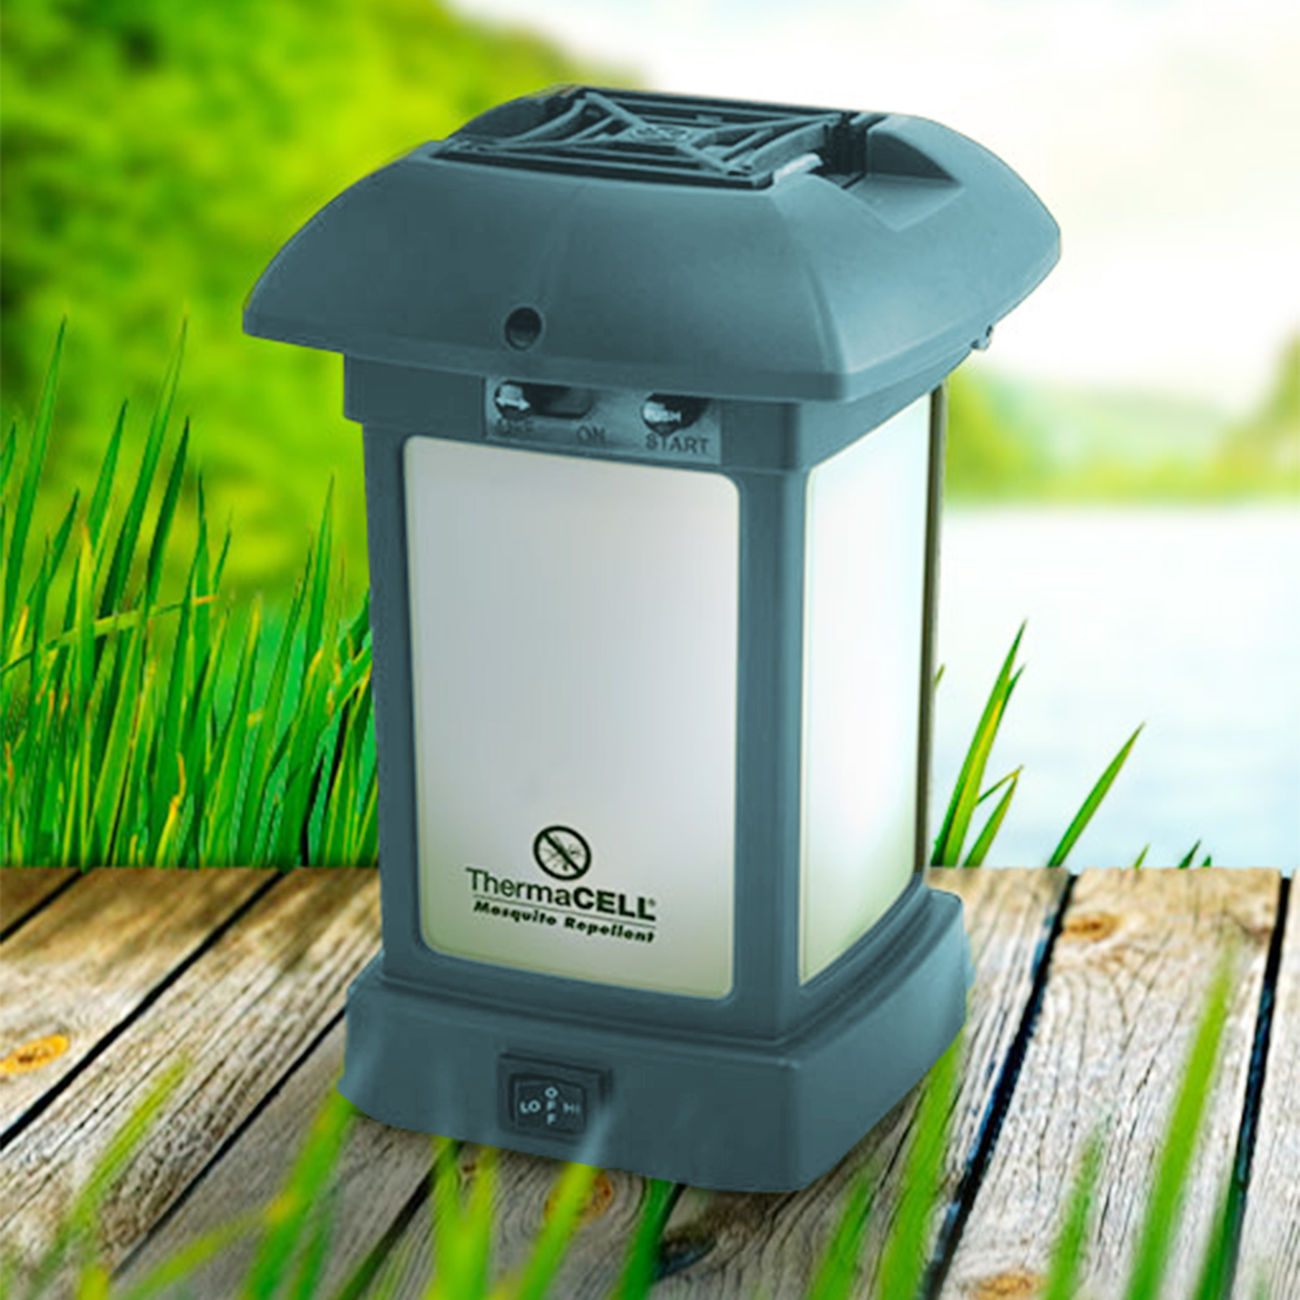 Outdoor Laterne Thermacell Outdoor Camping Laterne Mit Insektenschutz